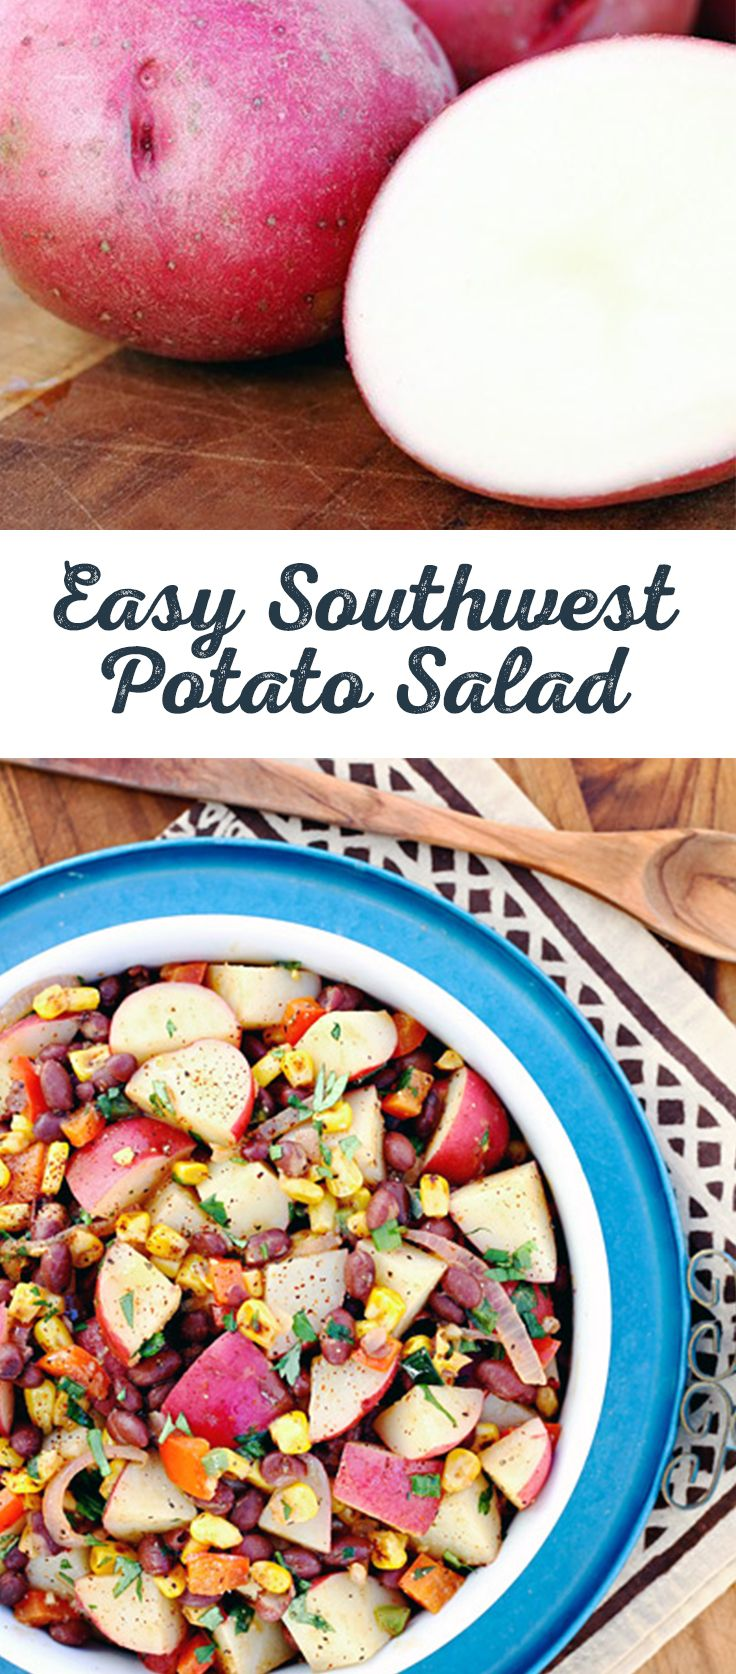 Utah is about big views and big flavor. Just take in the sight of this Easy Southwest Potato Salad. Large dice those taters and create a few tasty monuments of your own. And this delicious destination is only thirty minutes away. Perfect for that packed l